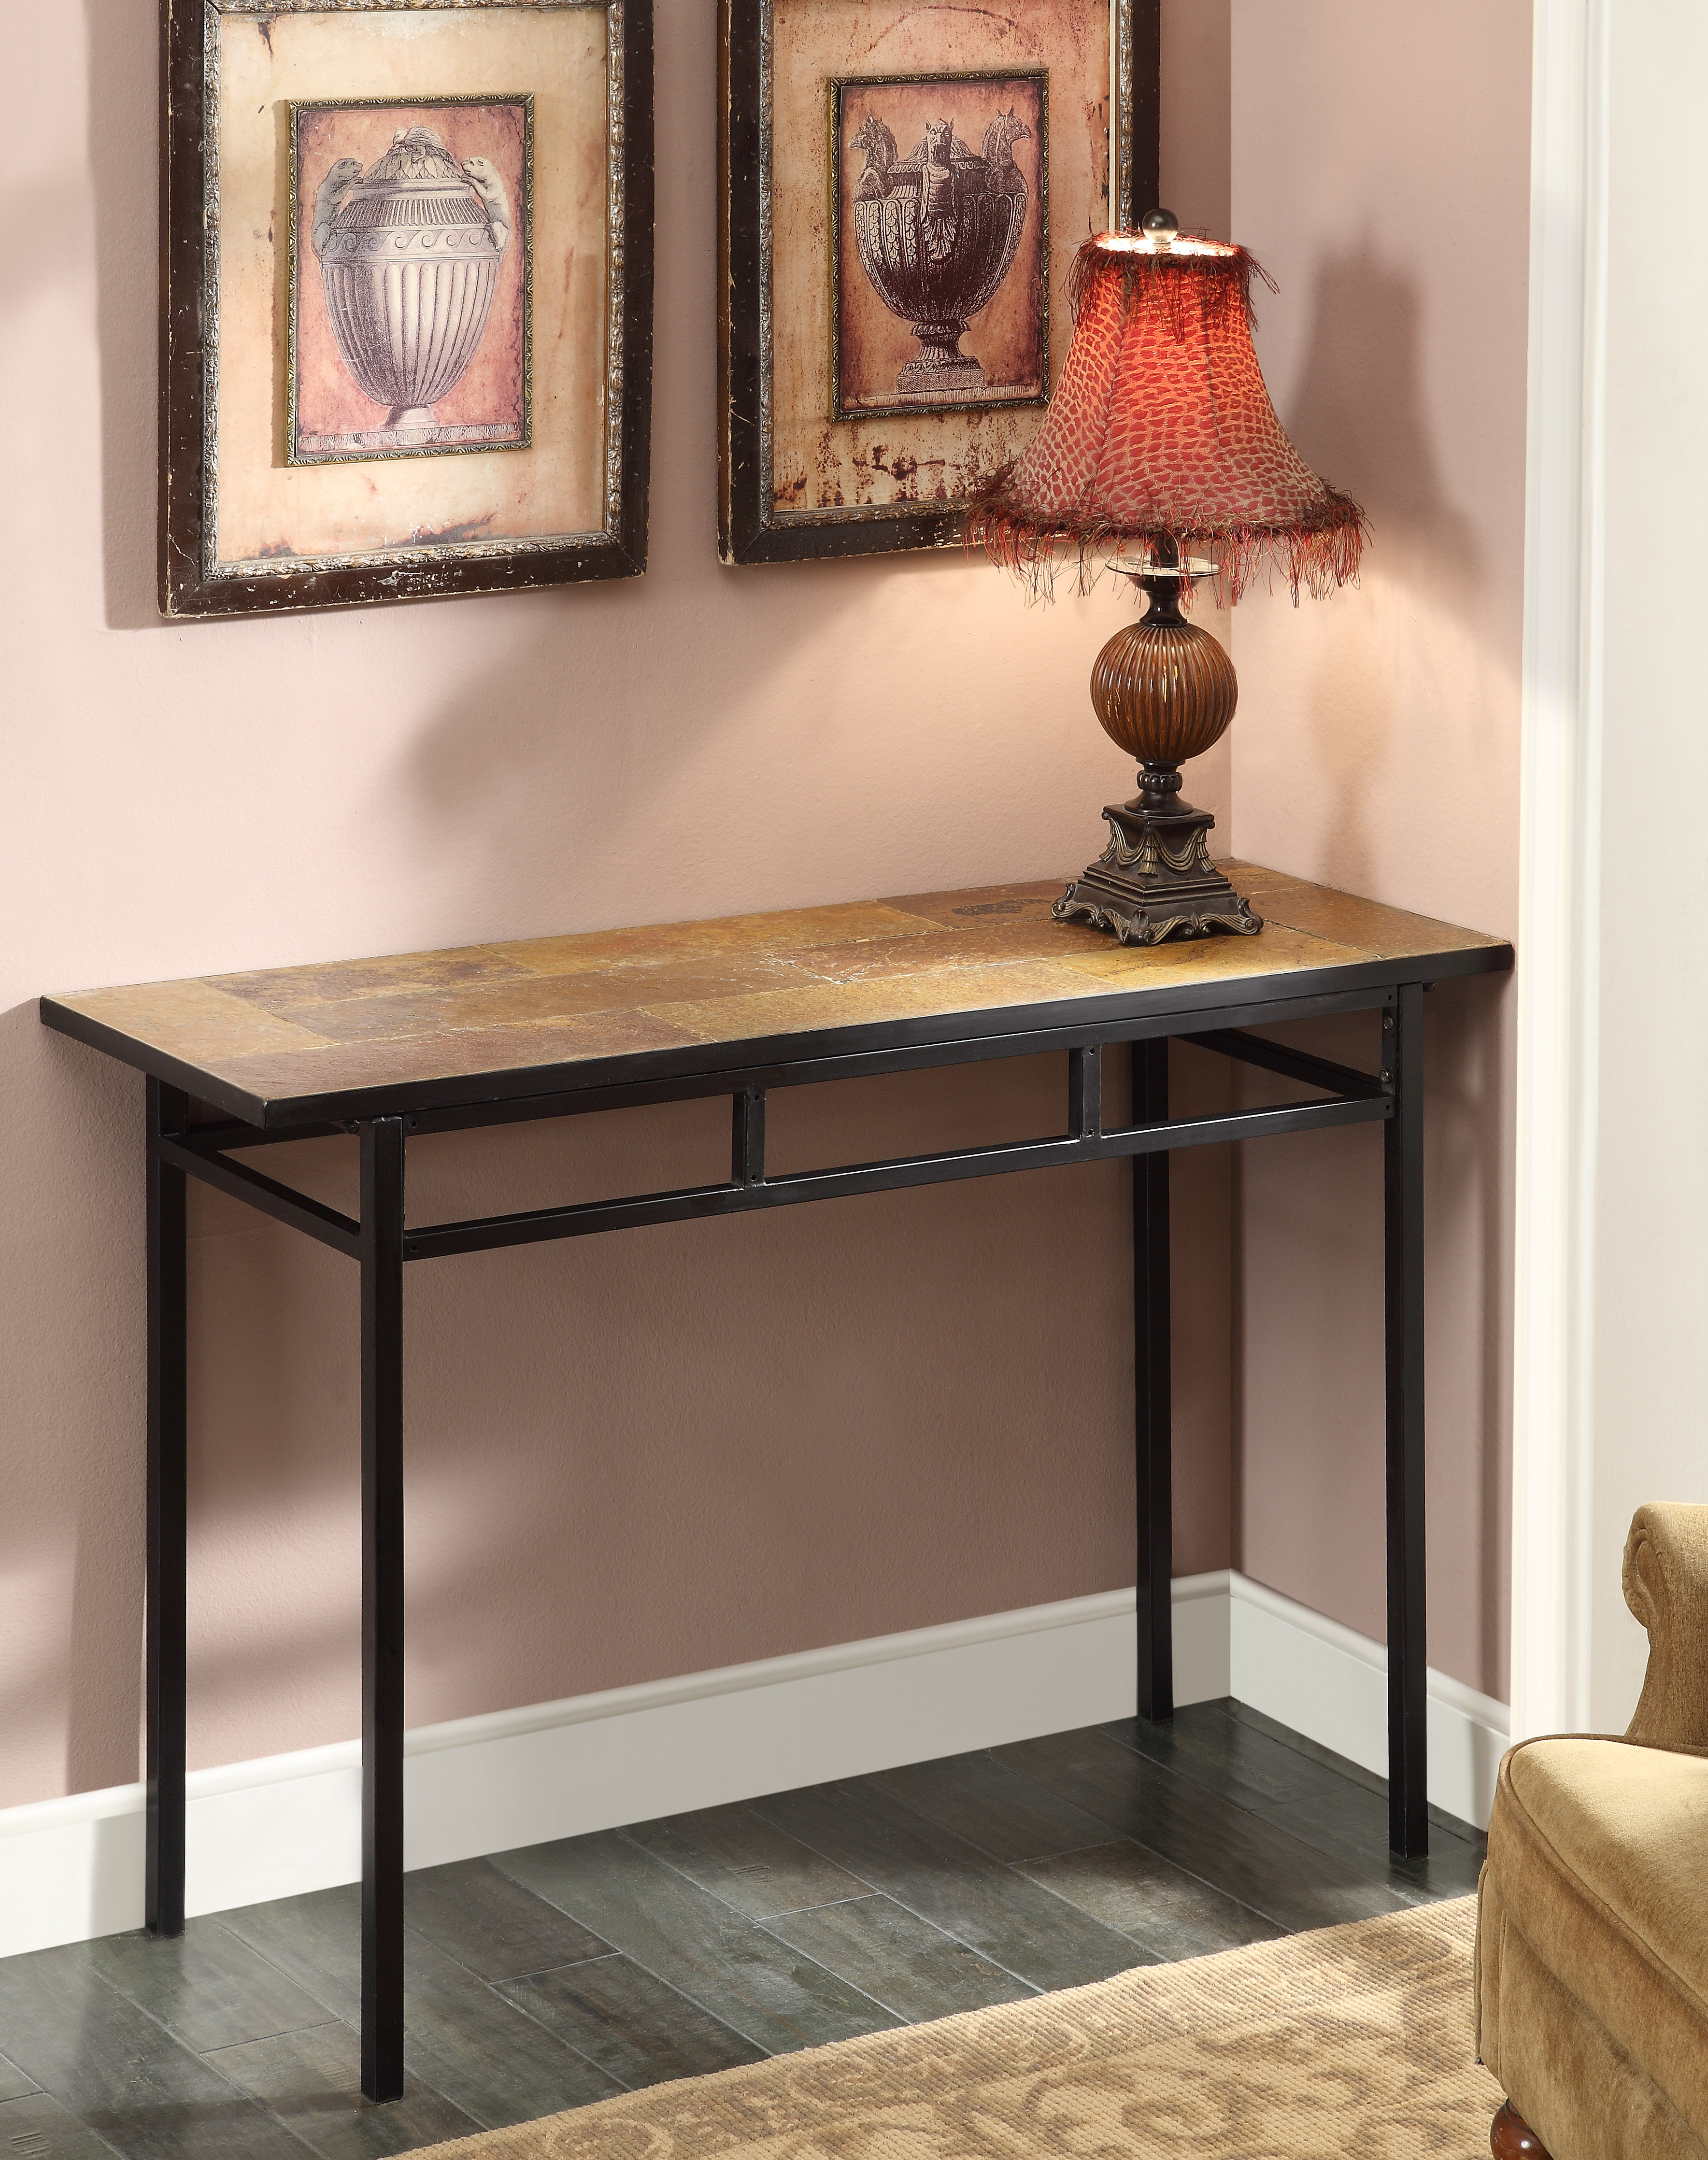 4D Concepts 601636 Sofa Table with Slate Top in Metal and Slate